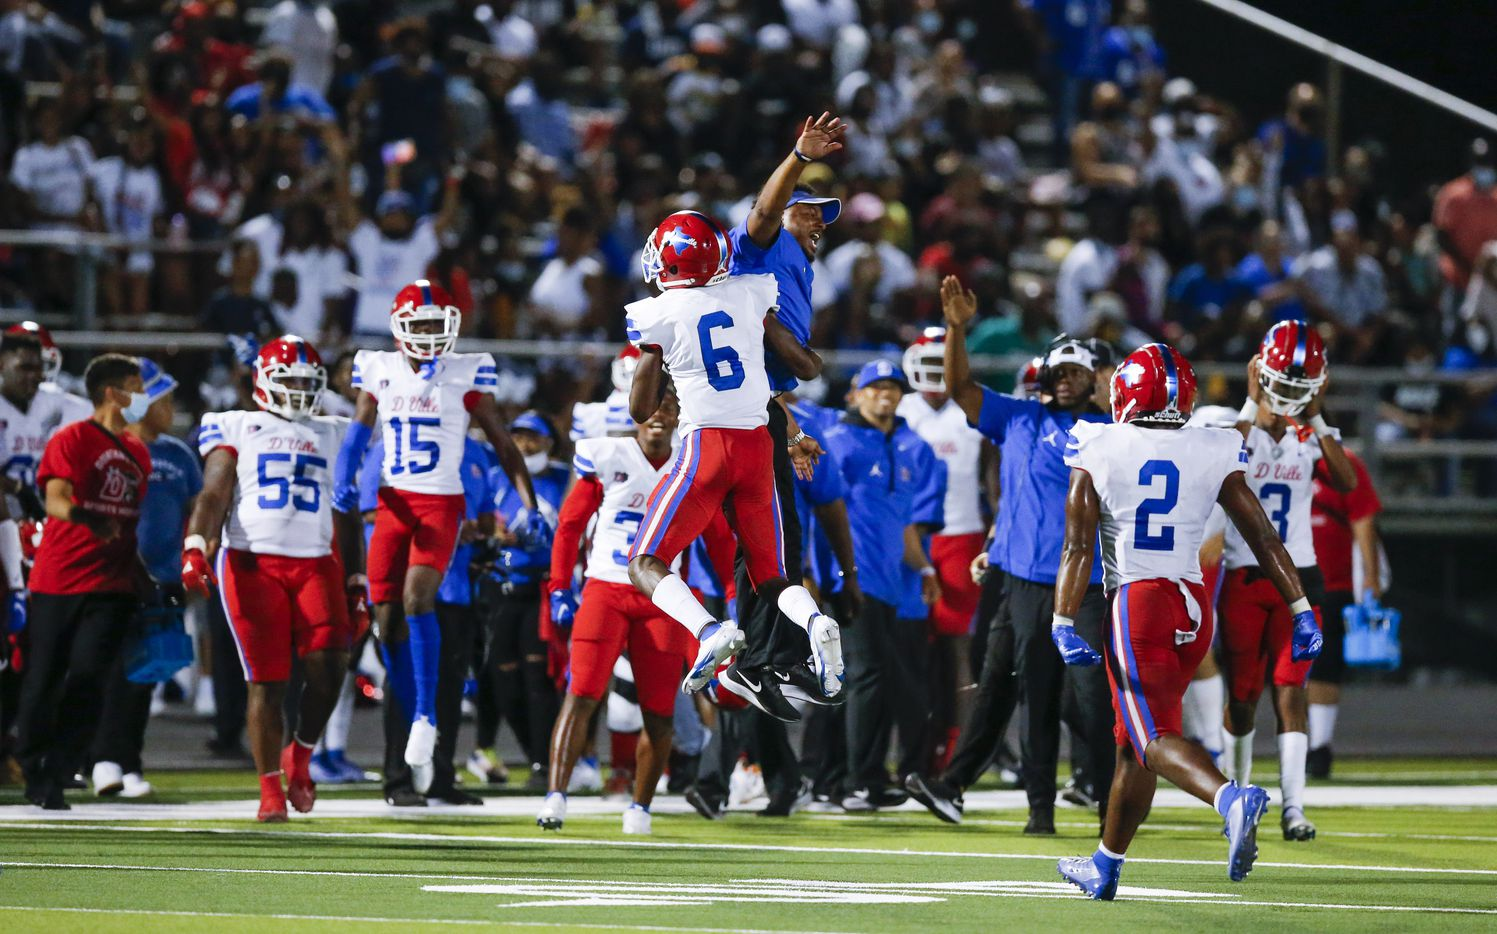 Duncanville senior Da'Myrion Colemman (6) celebrates with coaches and teammates after coming up with a DeSoto fumble on a punt return during the second half of a high school football game at DeSoto High School, Friday, September 17, 2021. Duncanville won 42-21. (Brandon Wade/Special Contributor)